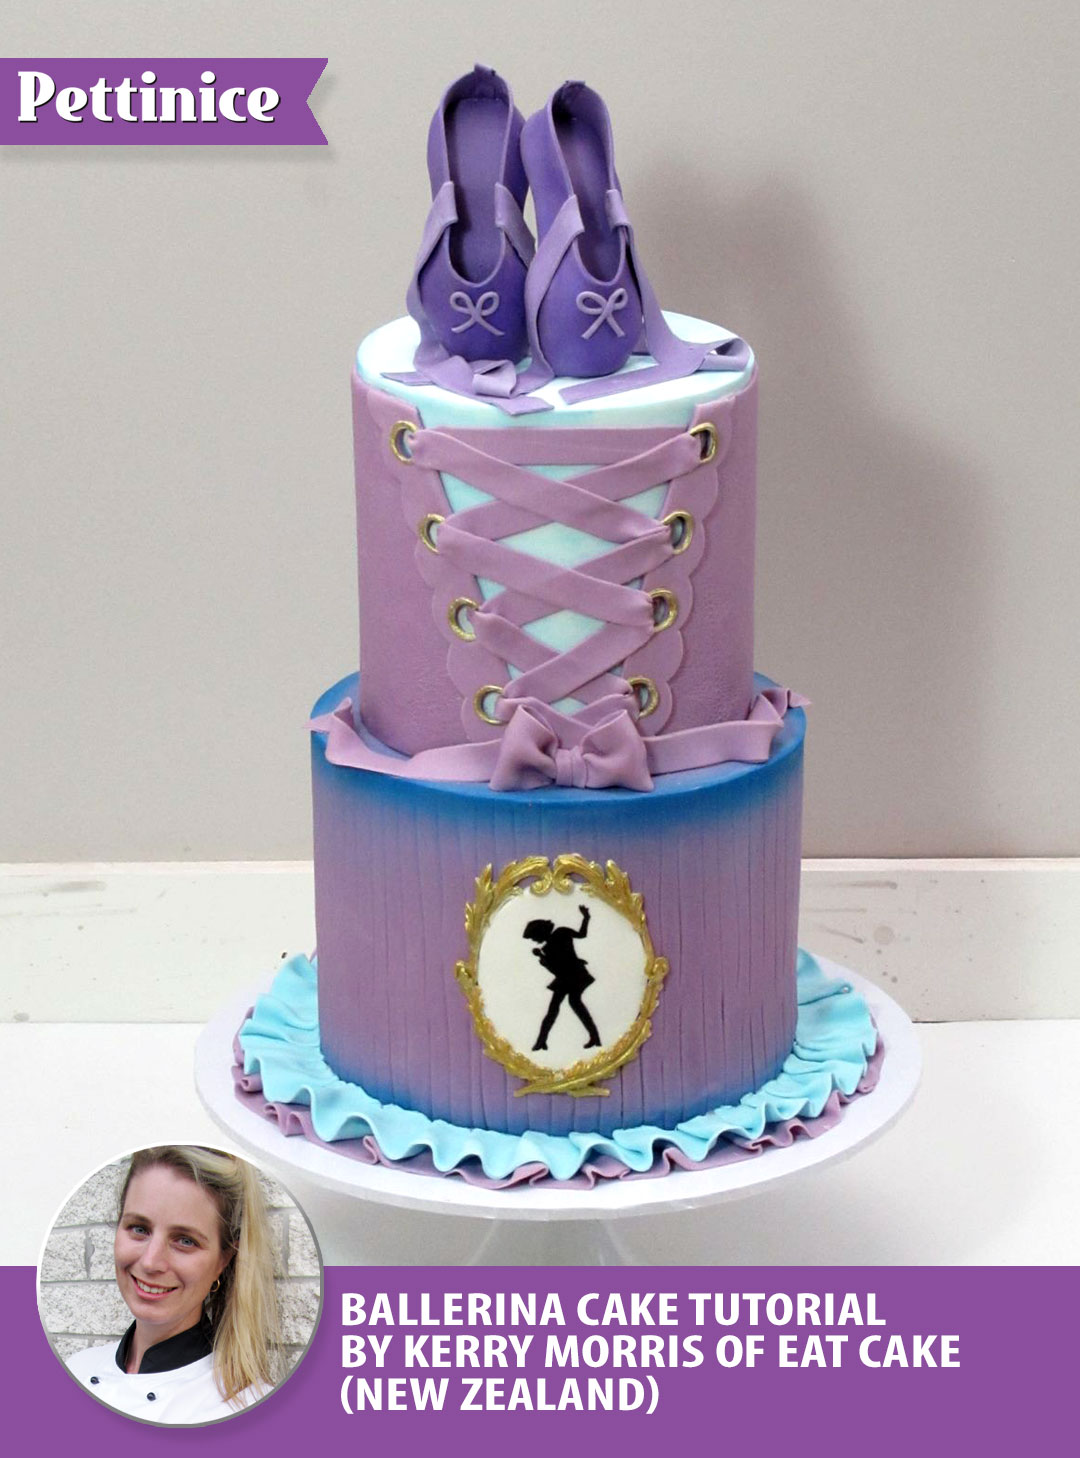 Pettinice Two Tier Ballet Cake Tutorial By Kerry Morris